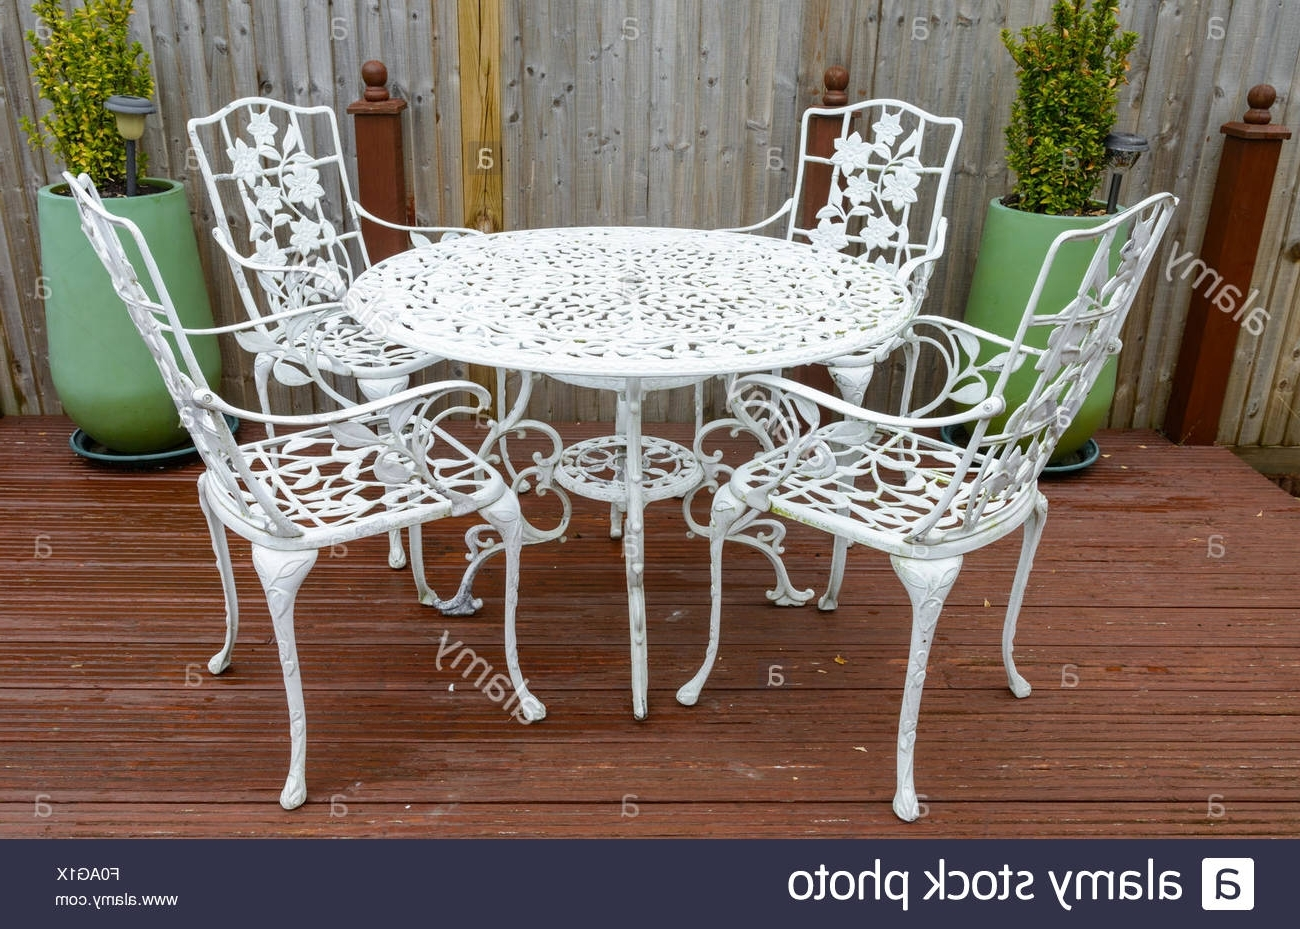 Chapleau Ii Side Chairs For Newest Cast Iron Chairs Stock Photos & Cast Iron Chairs Stock Images – Alamy (Gallery 15 of 20)